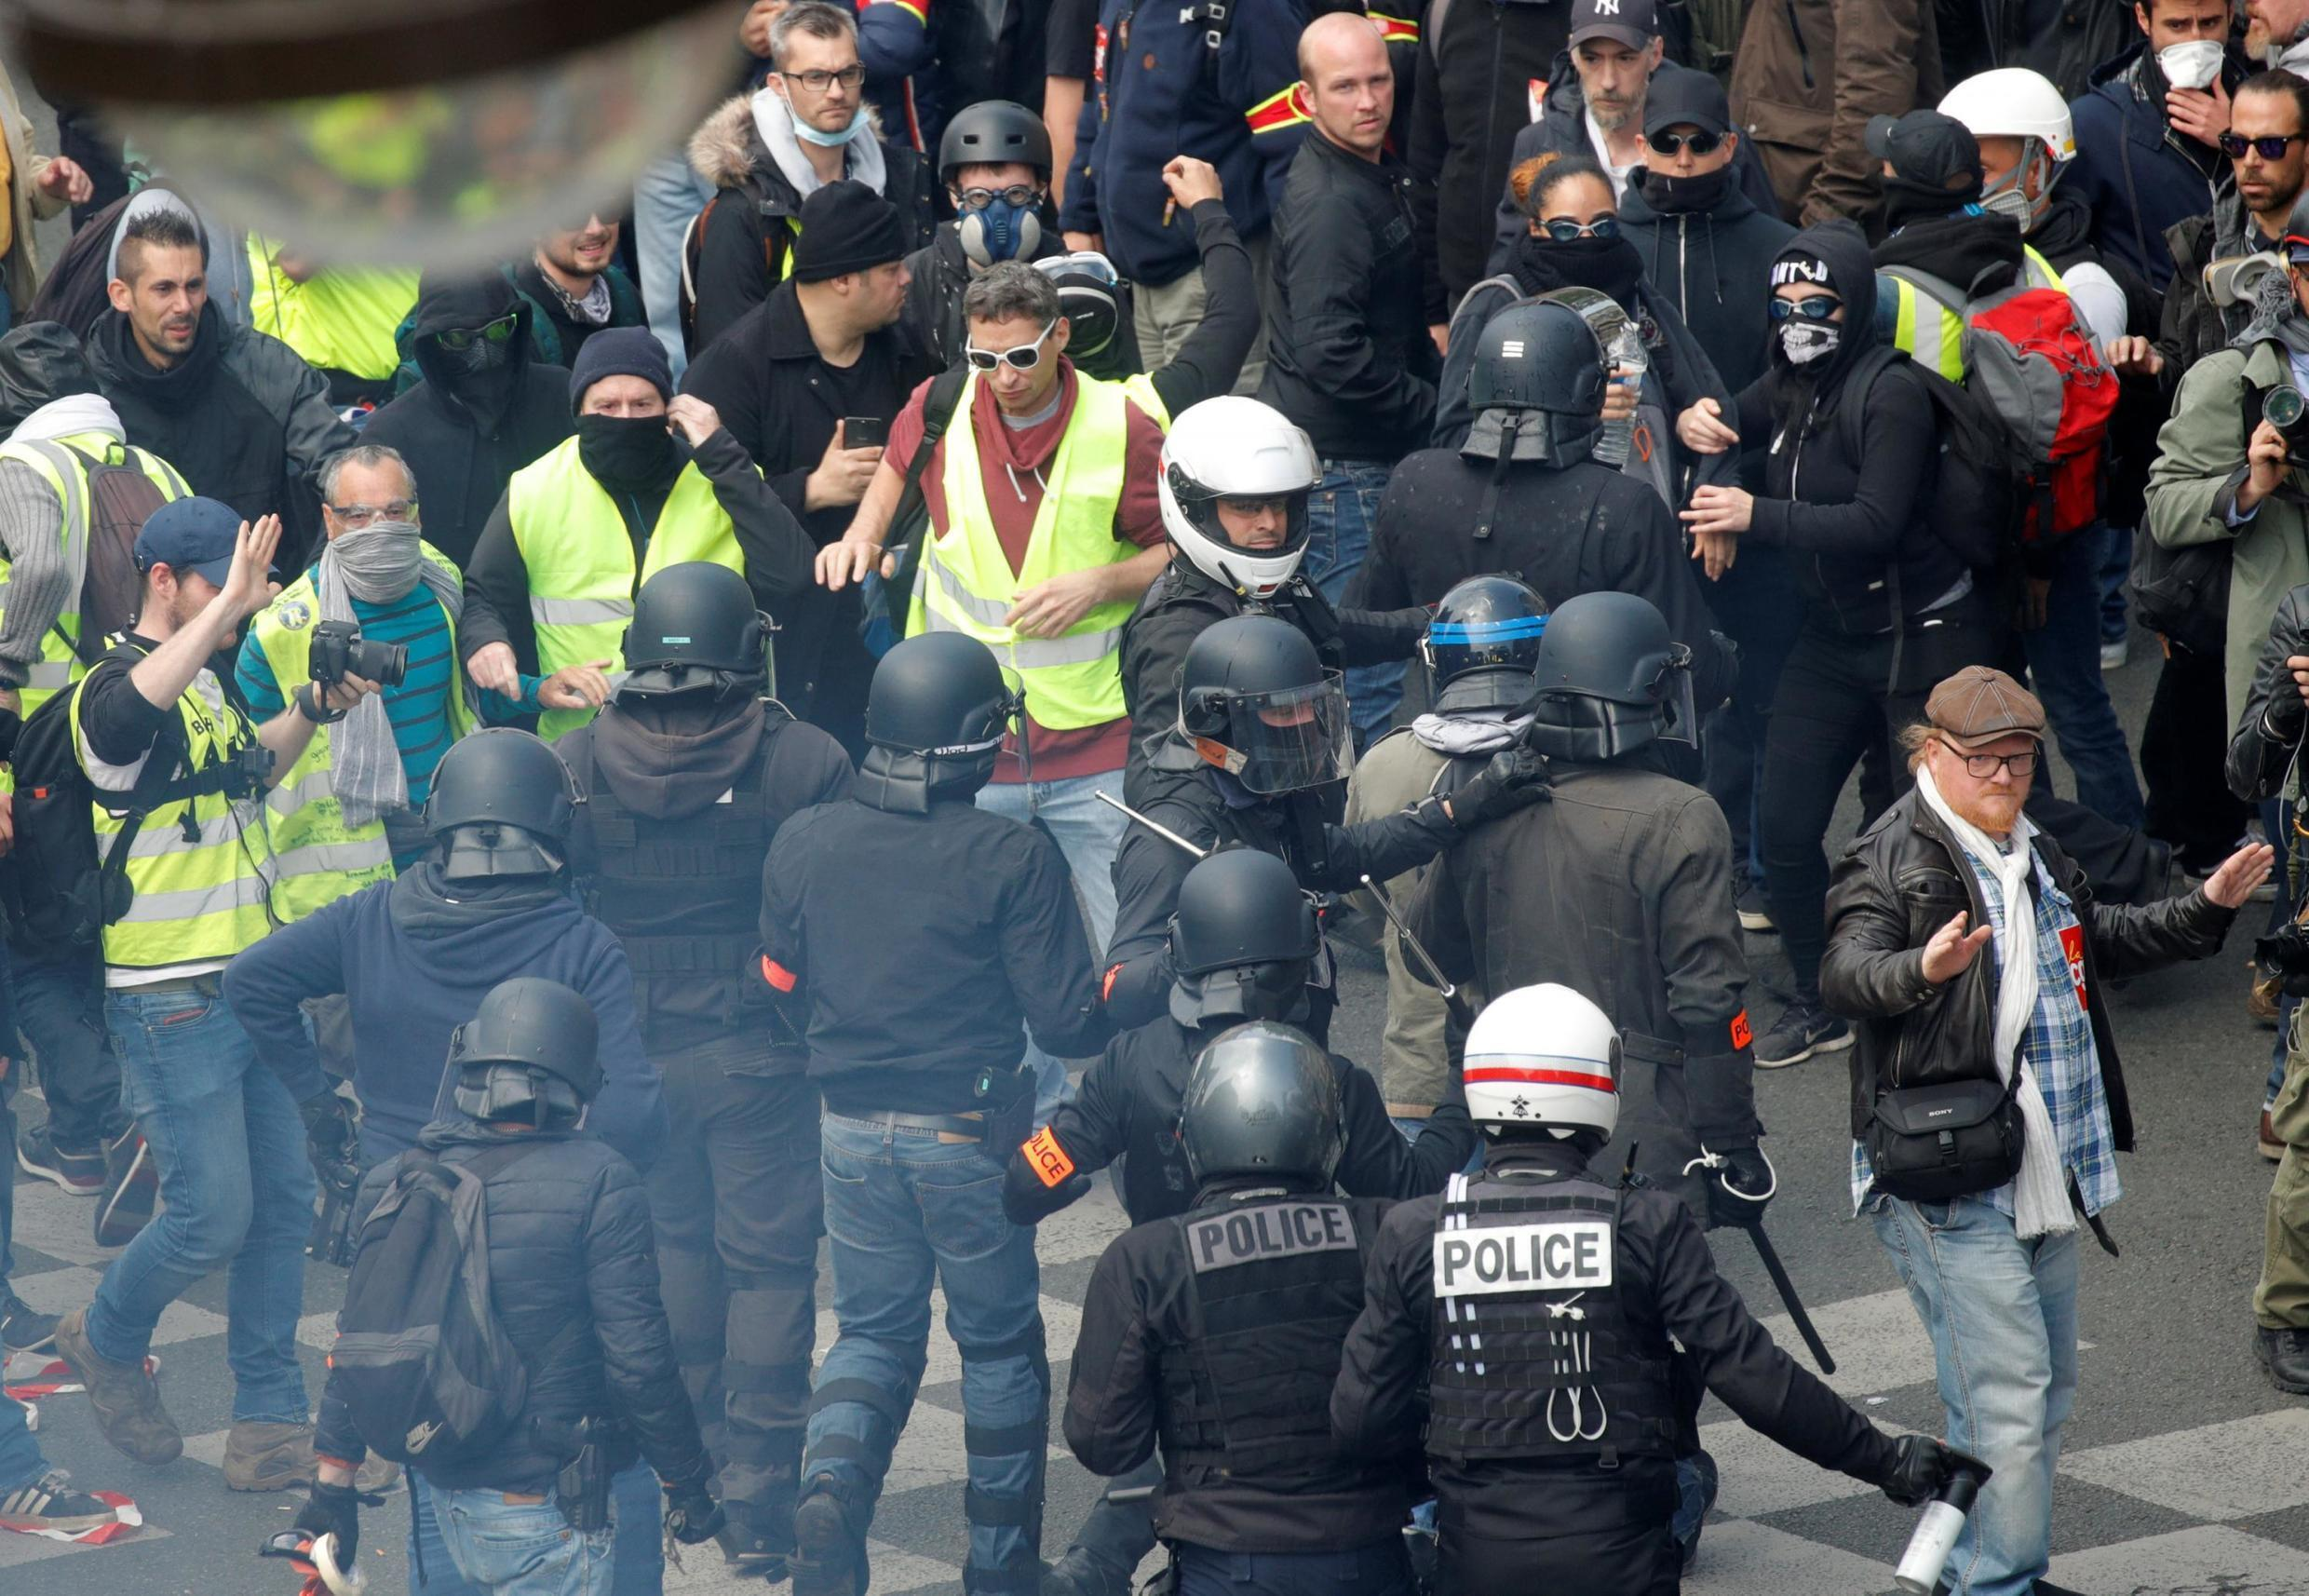 French police apprehend protesters during the traditional May Day labour union march with French unions and yellow vests protesters in Paris, France, May 1, 2019.